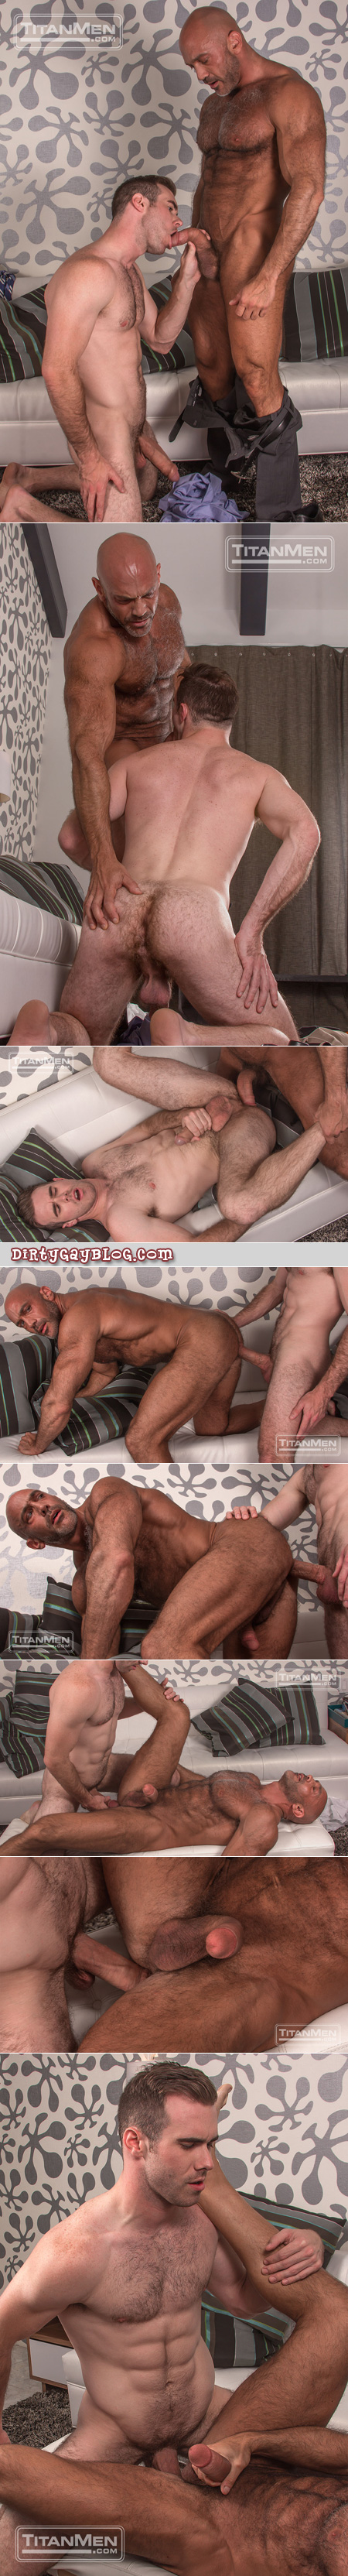 Hairy muscle Daddy getting fucked bareback.